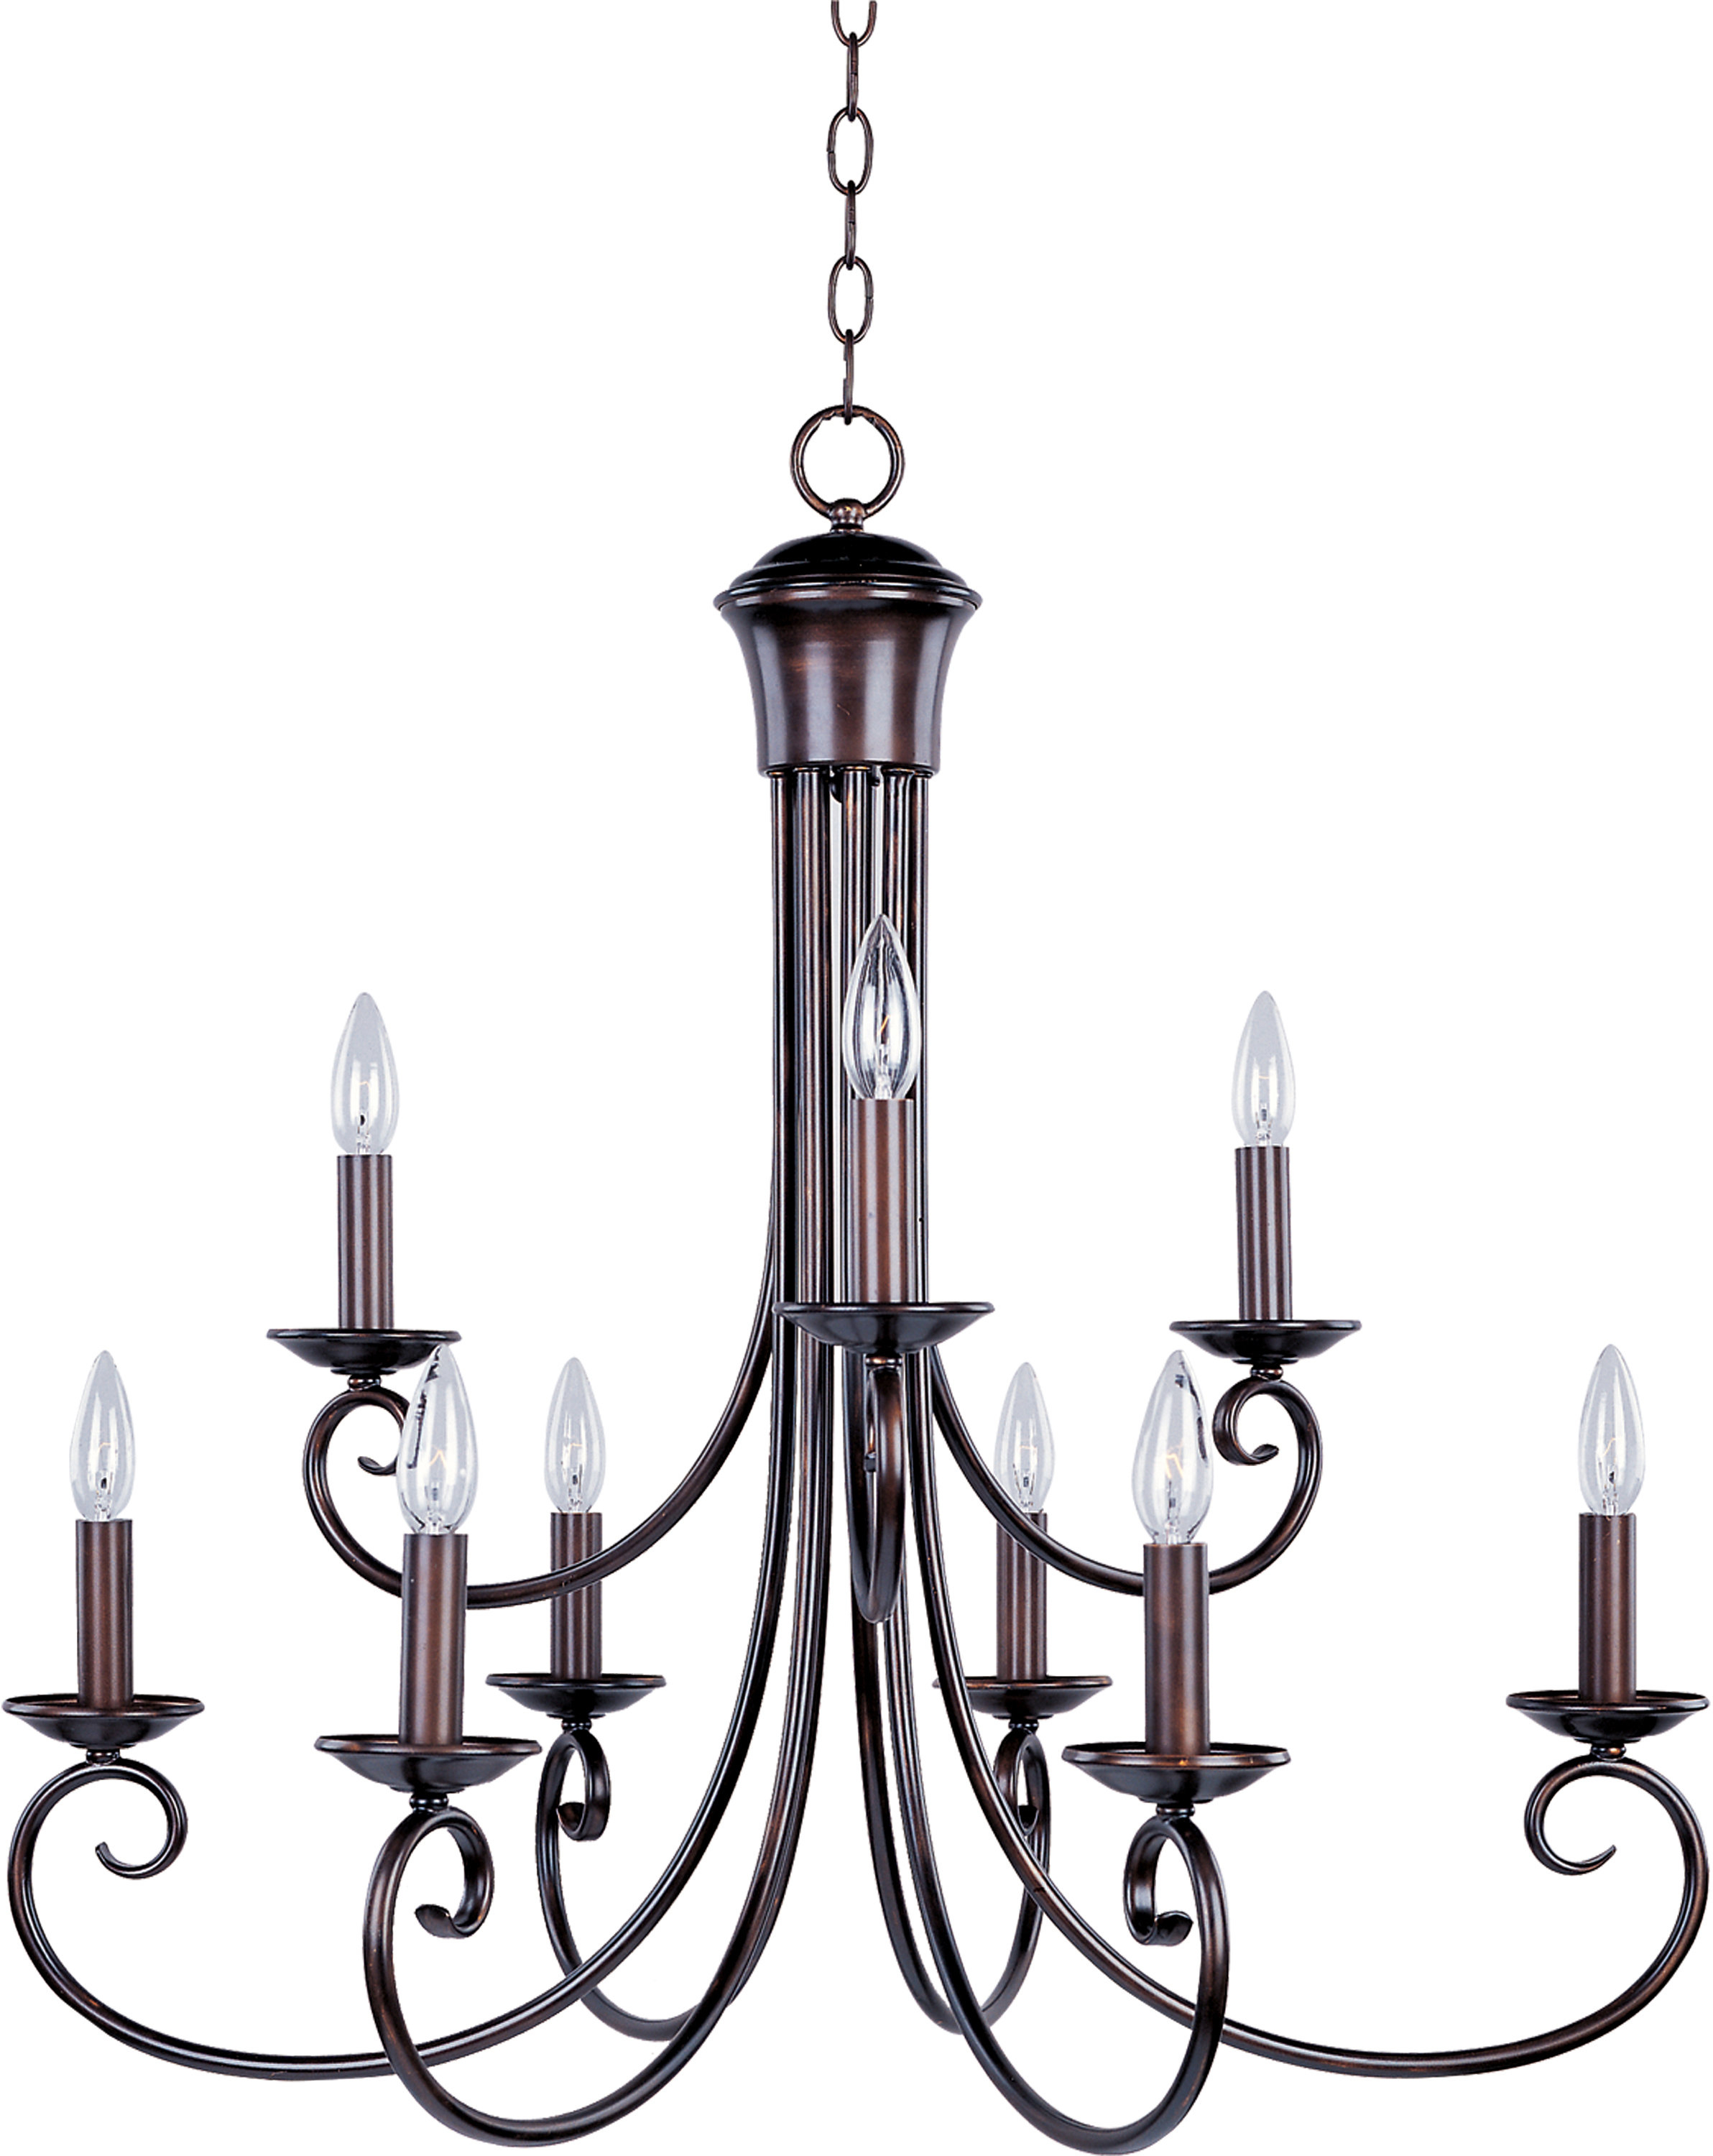 Charlton Home Kenedy 9-Light Candle Style Chandelier regarding Watford 9-Light Candle Style Chandeliers (Image 7 of 30)